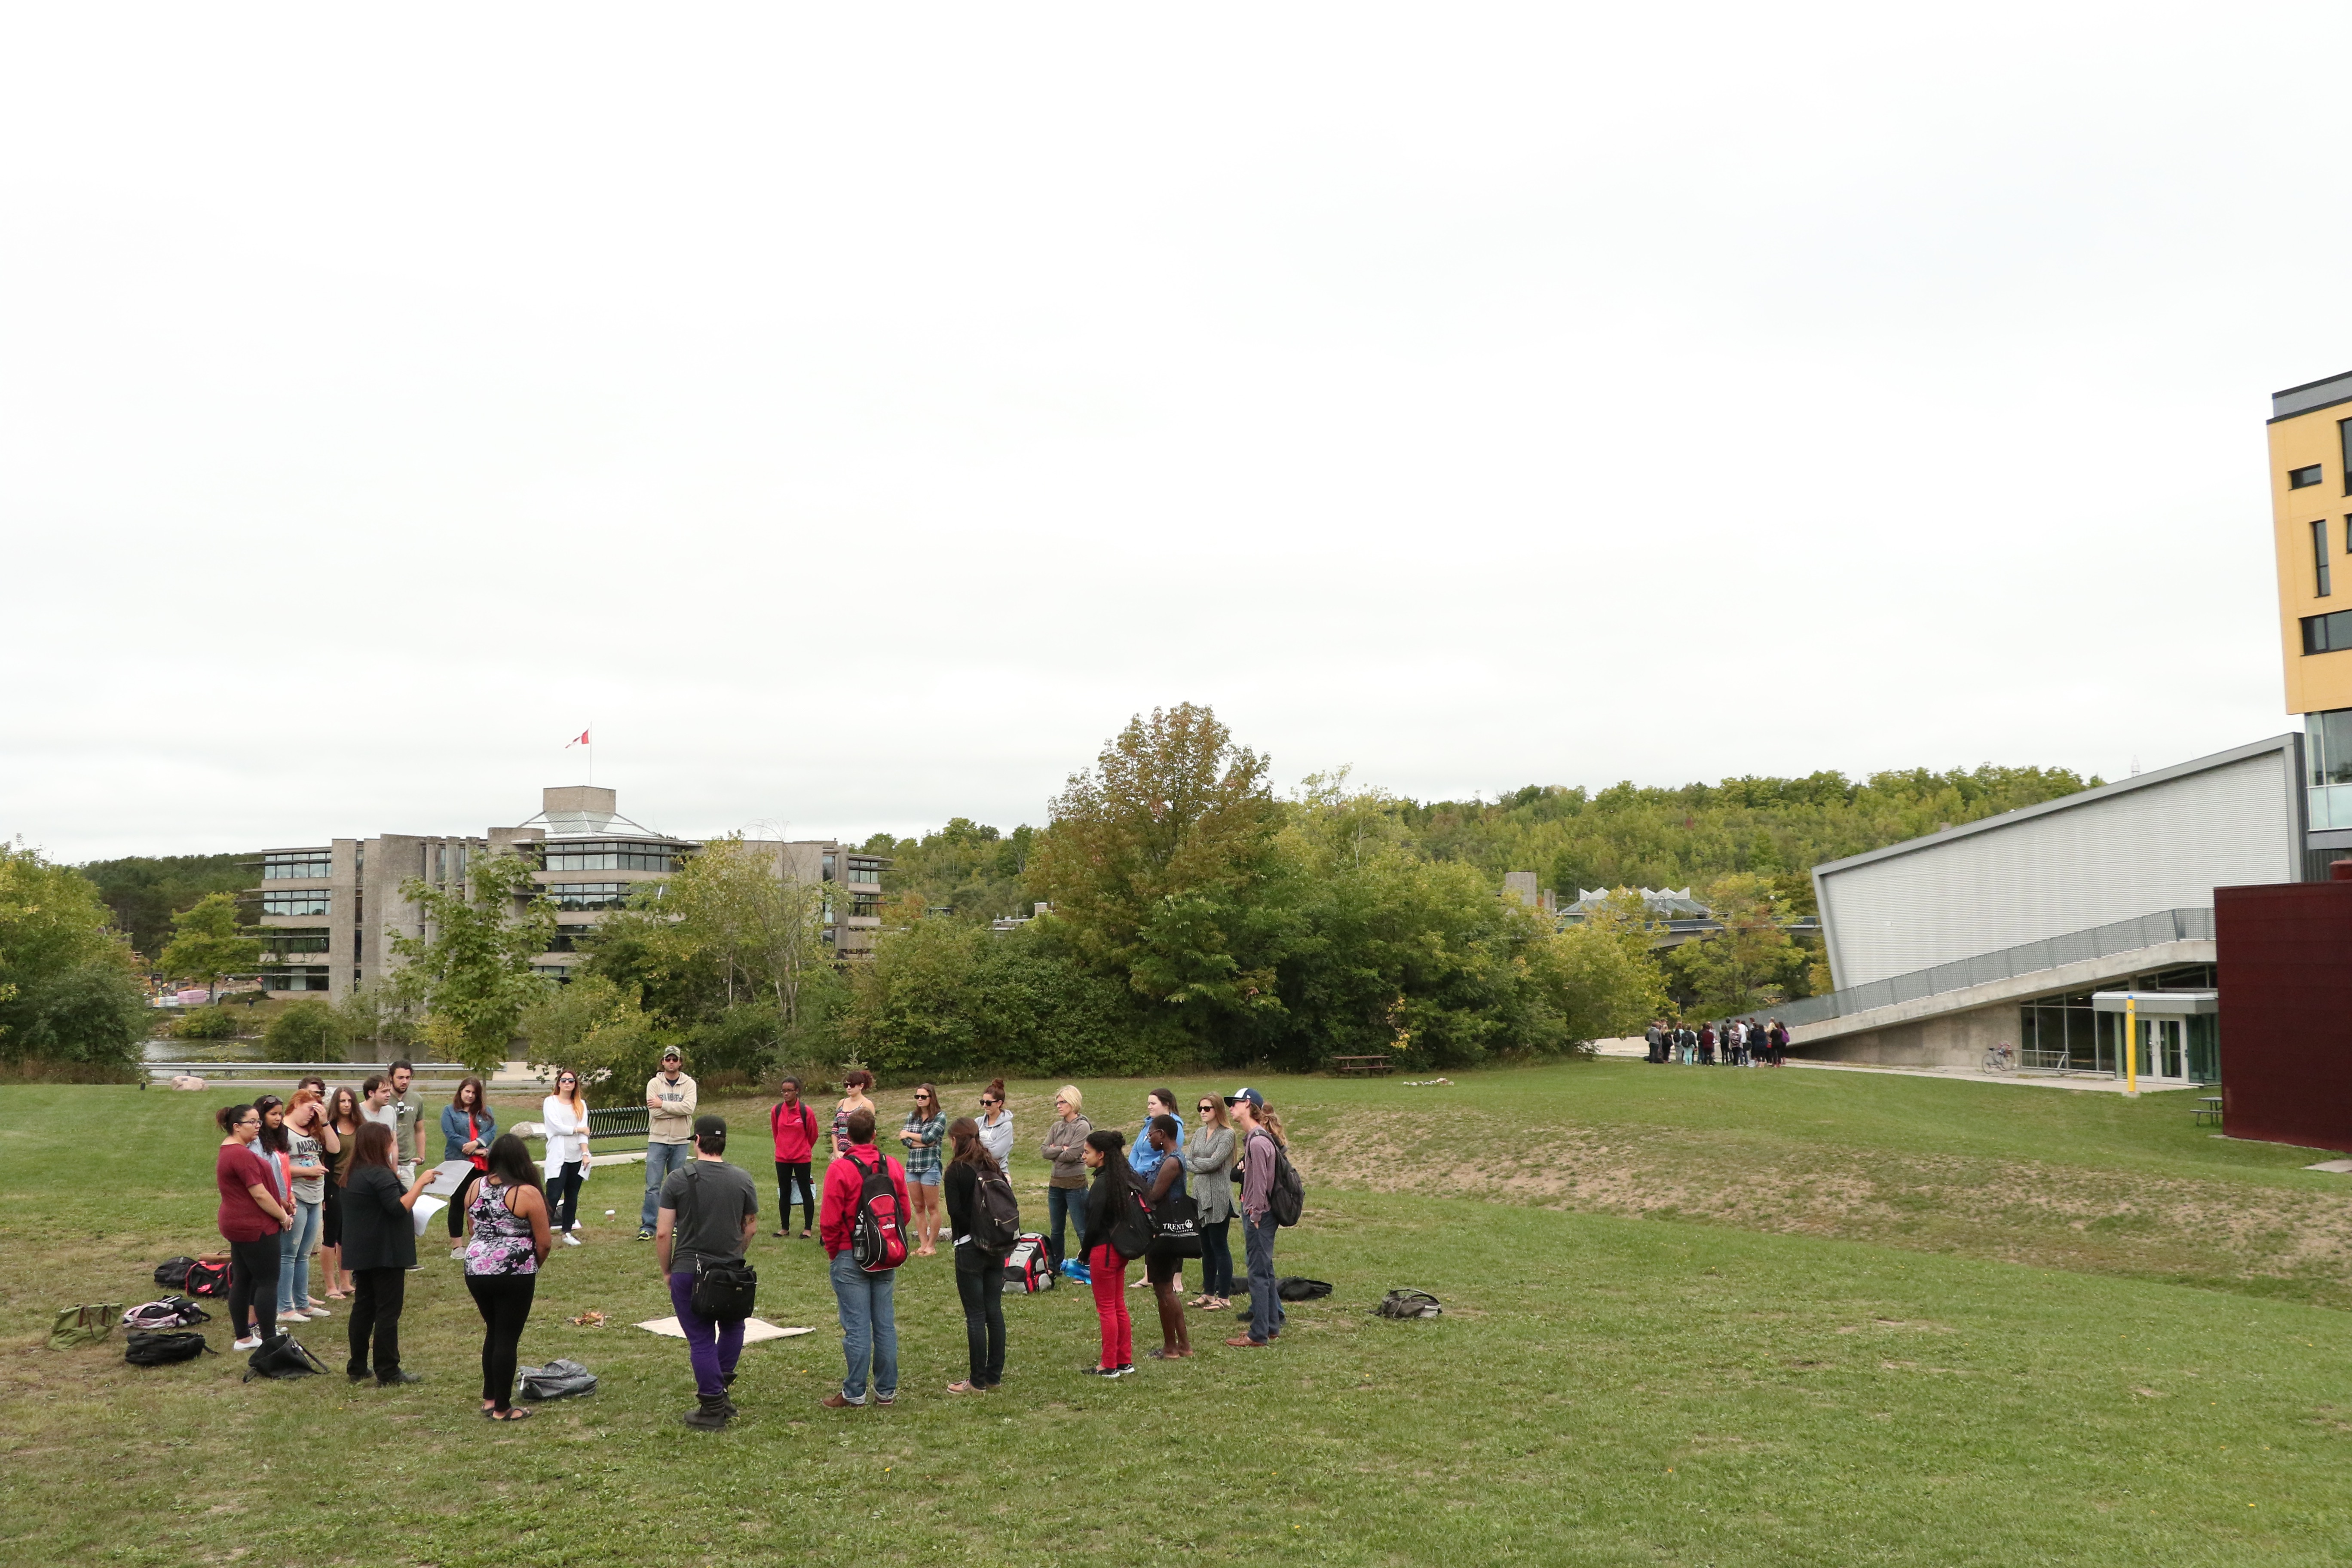 students gathering for discussion outside of Gzowski college